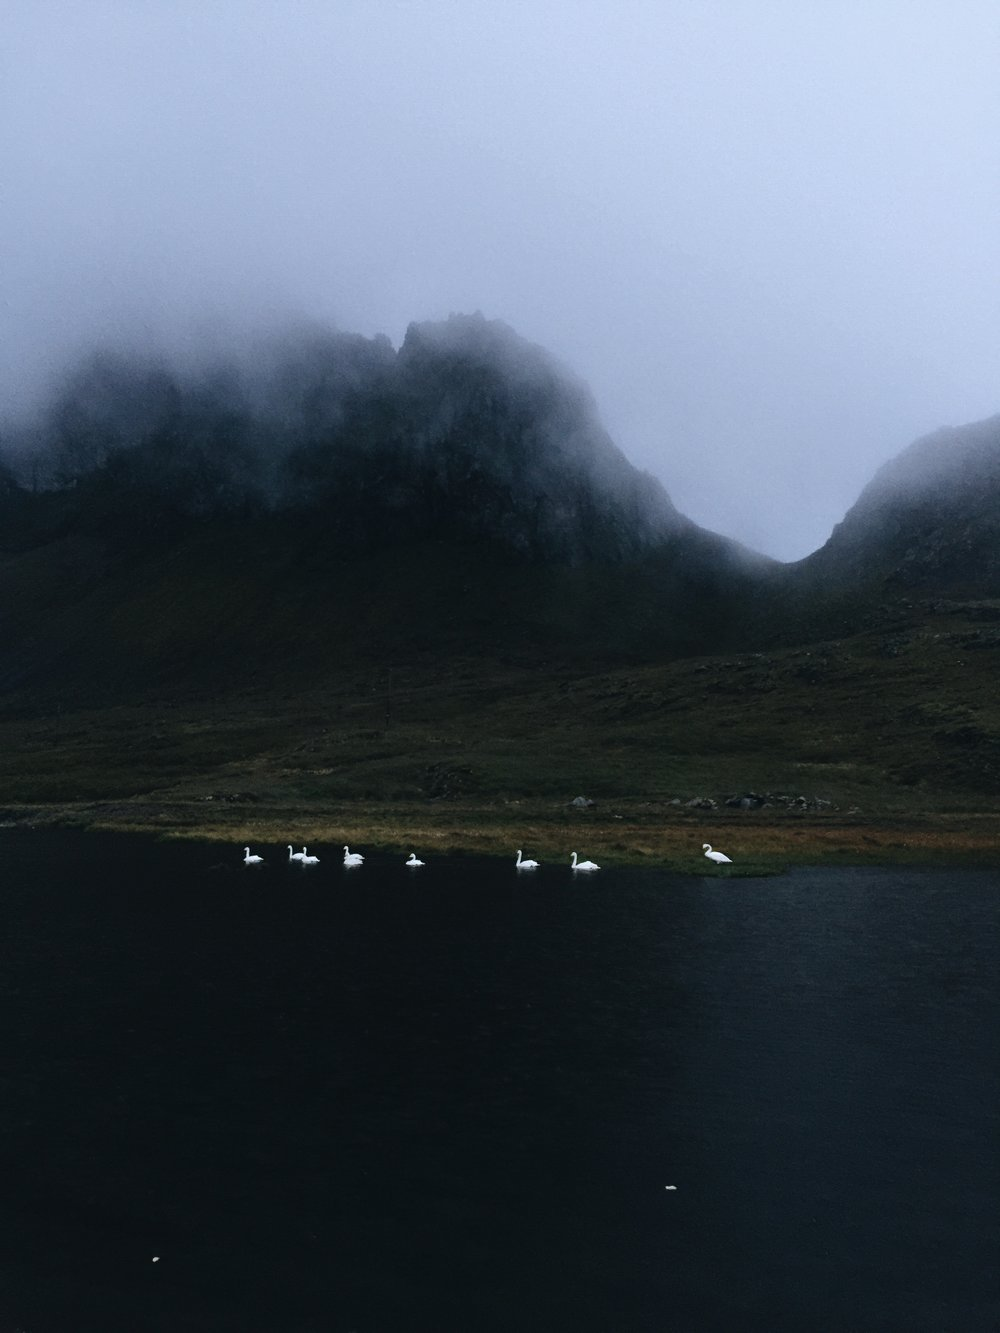 Copy of Swans in the Evening, East Iceland